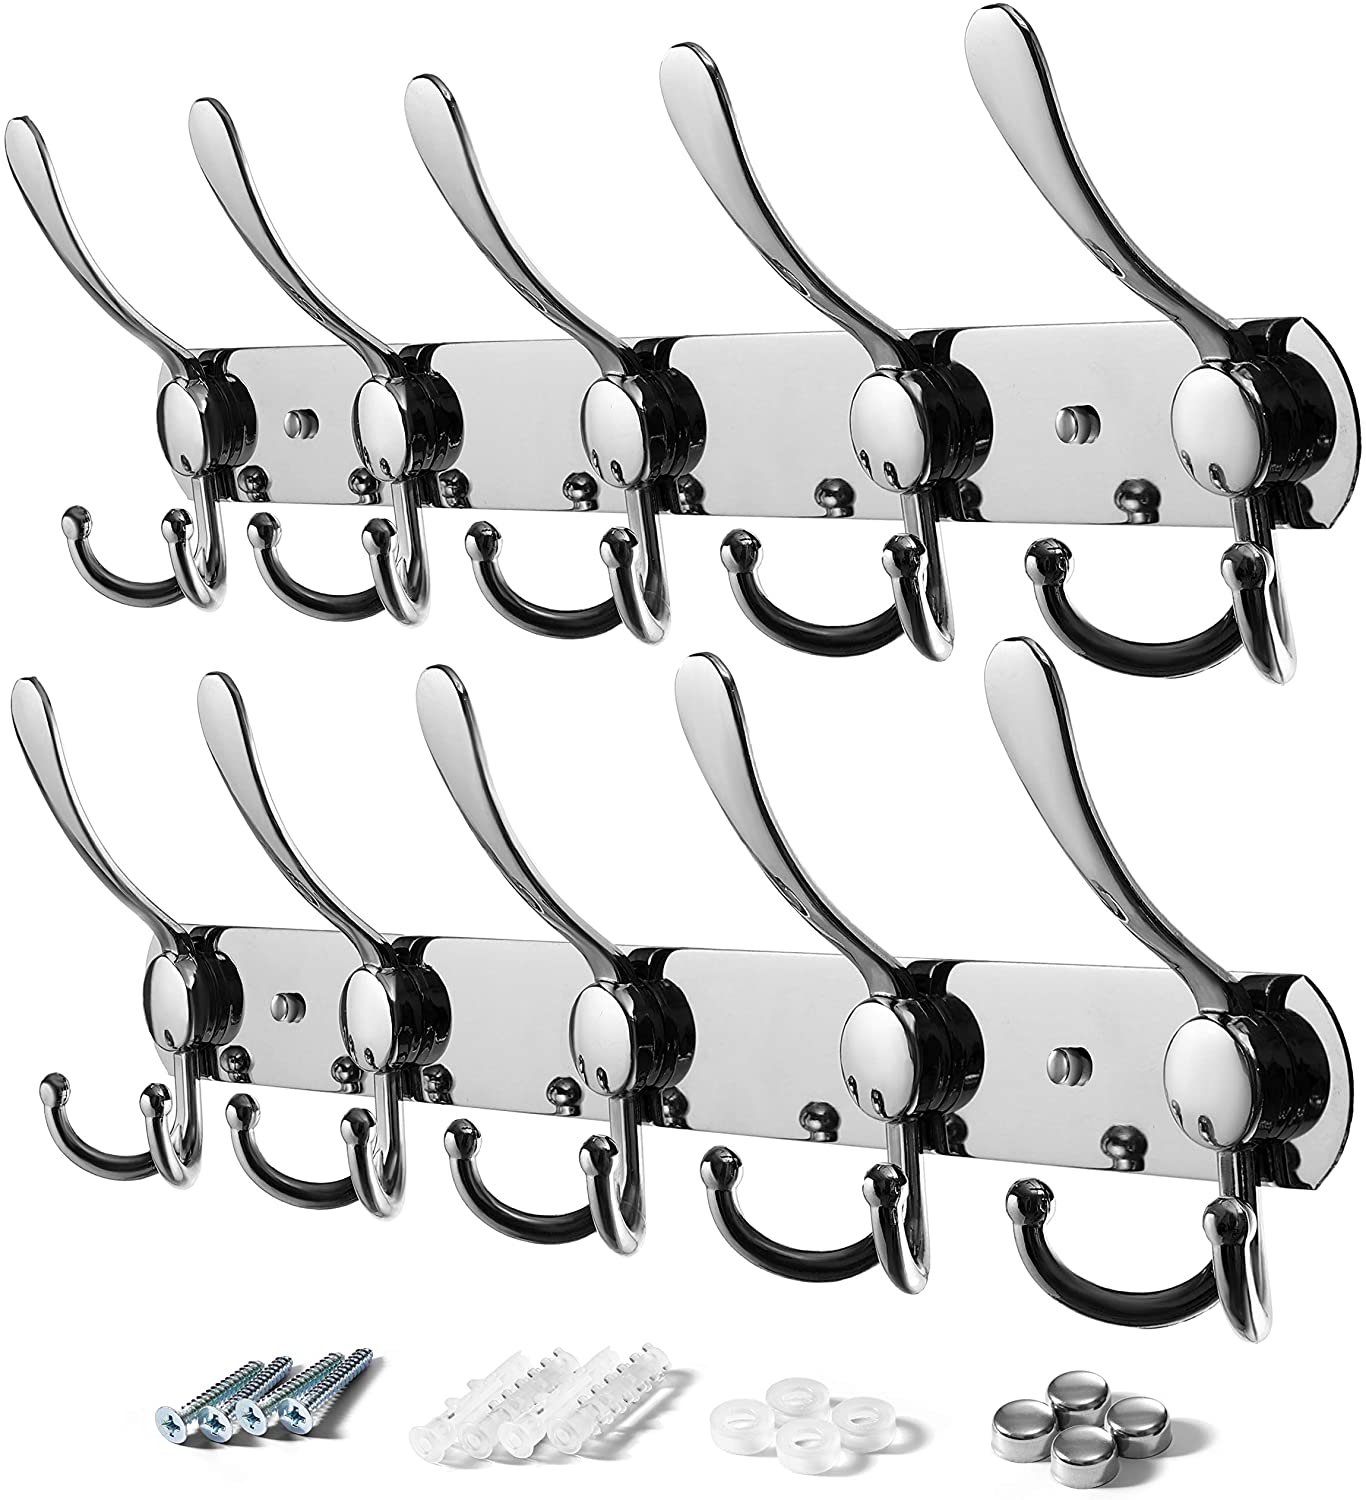 VASGOR 2pcs Heavy Duty Wall Mounted Coat Hook, Stainless Steel Rack of 5 Tri Hooks for Coats, Towels, Purse Robes Keys and Hats Multi Purpose for Kitchen, Bedroom, Bathroom, Entryway (Silver)